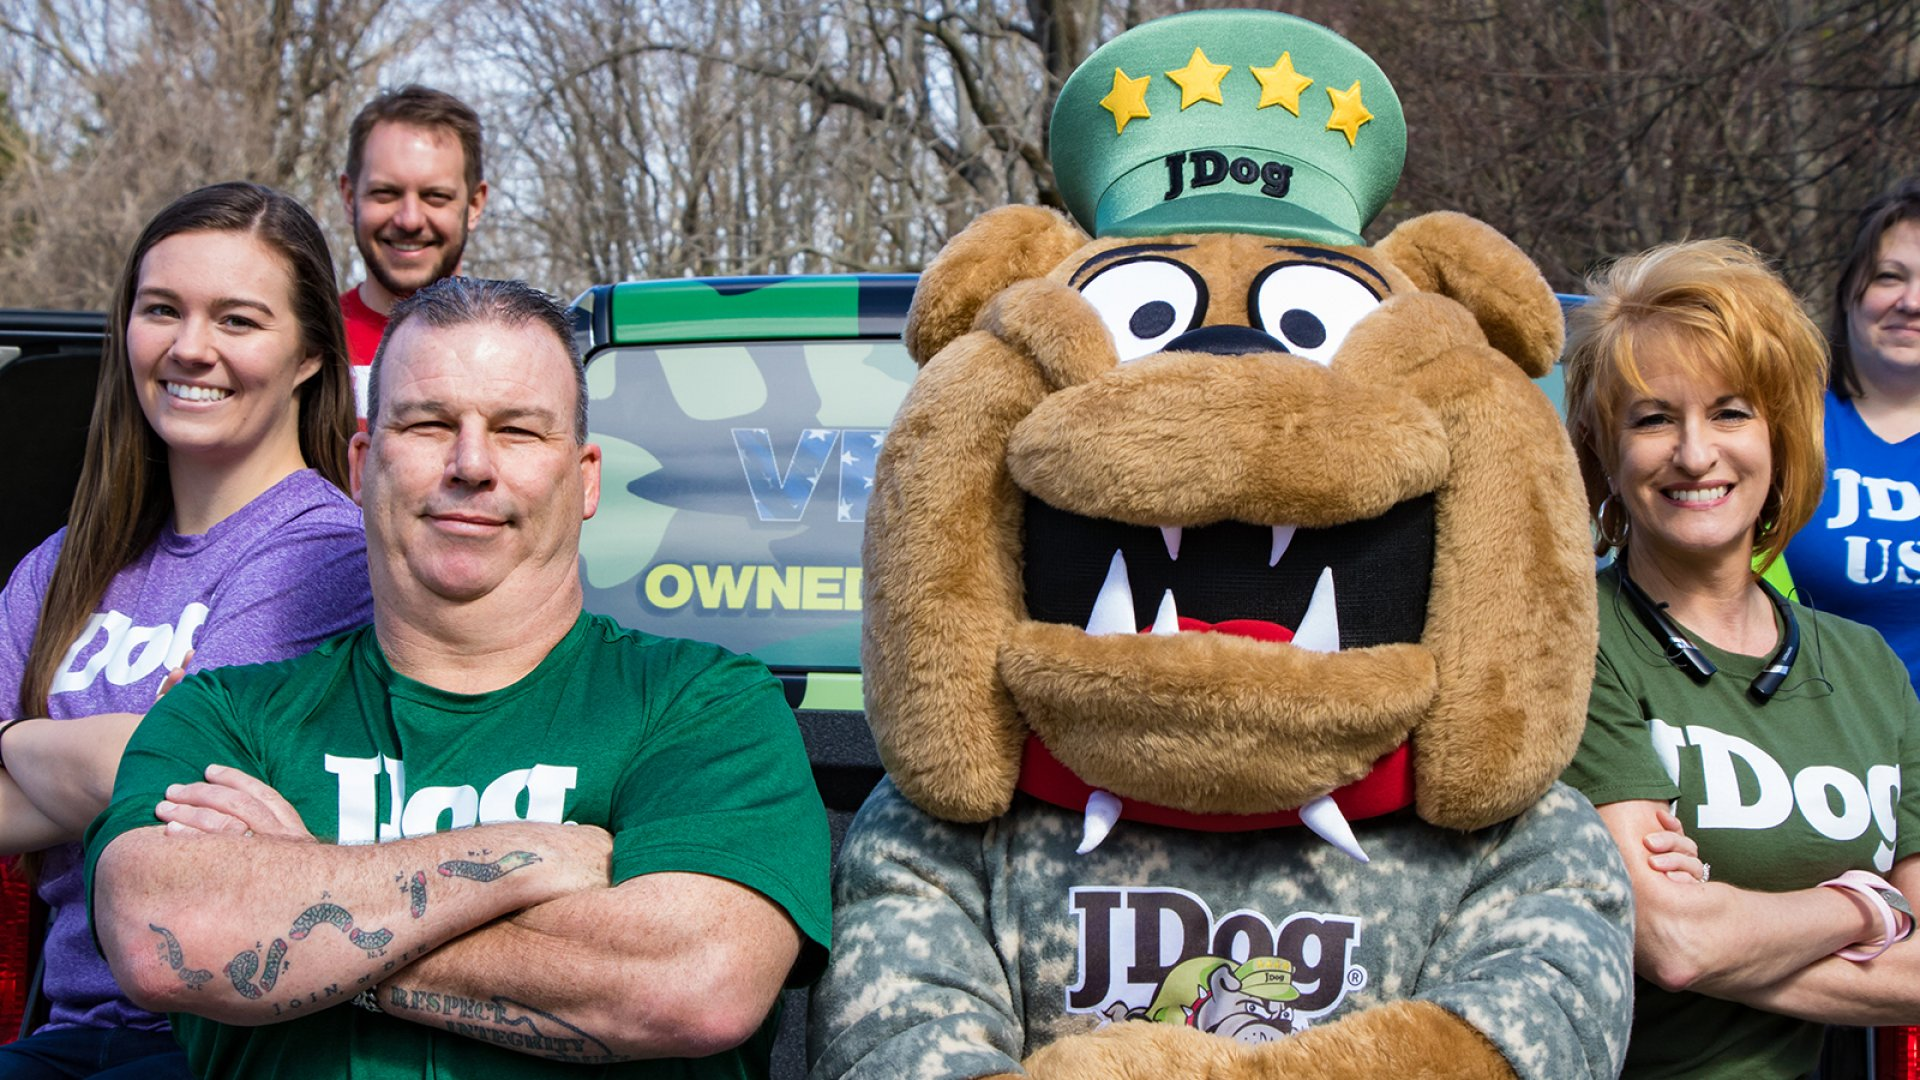 JDog founder and CEO Jerry Flanagan (front left) and team.